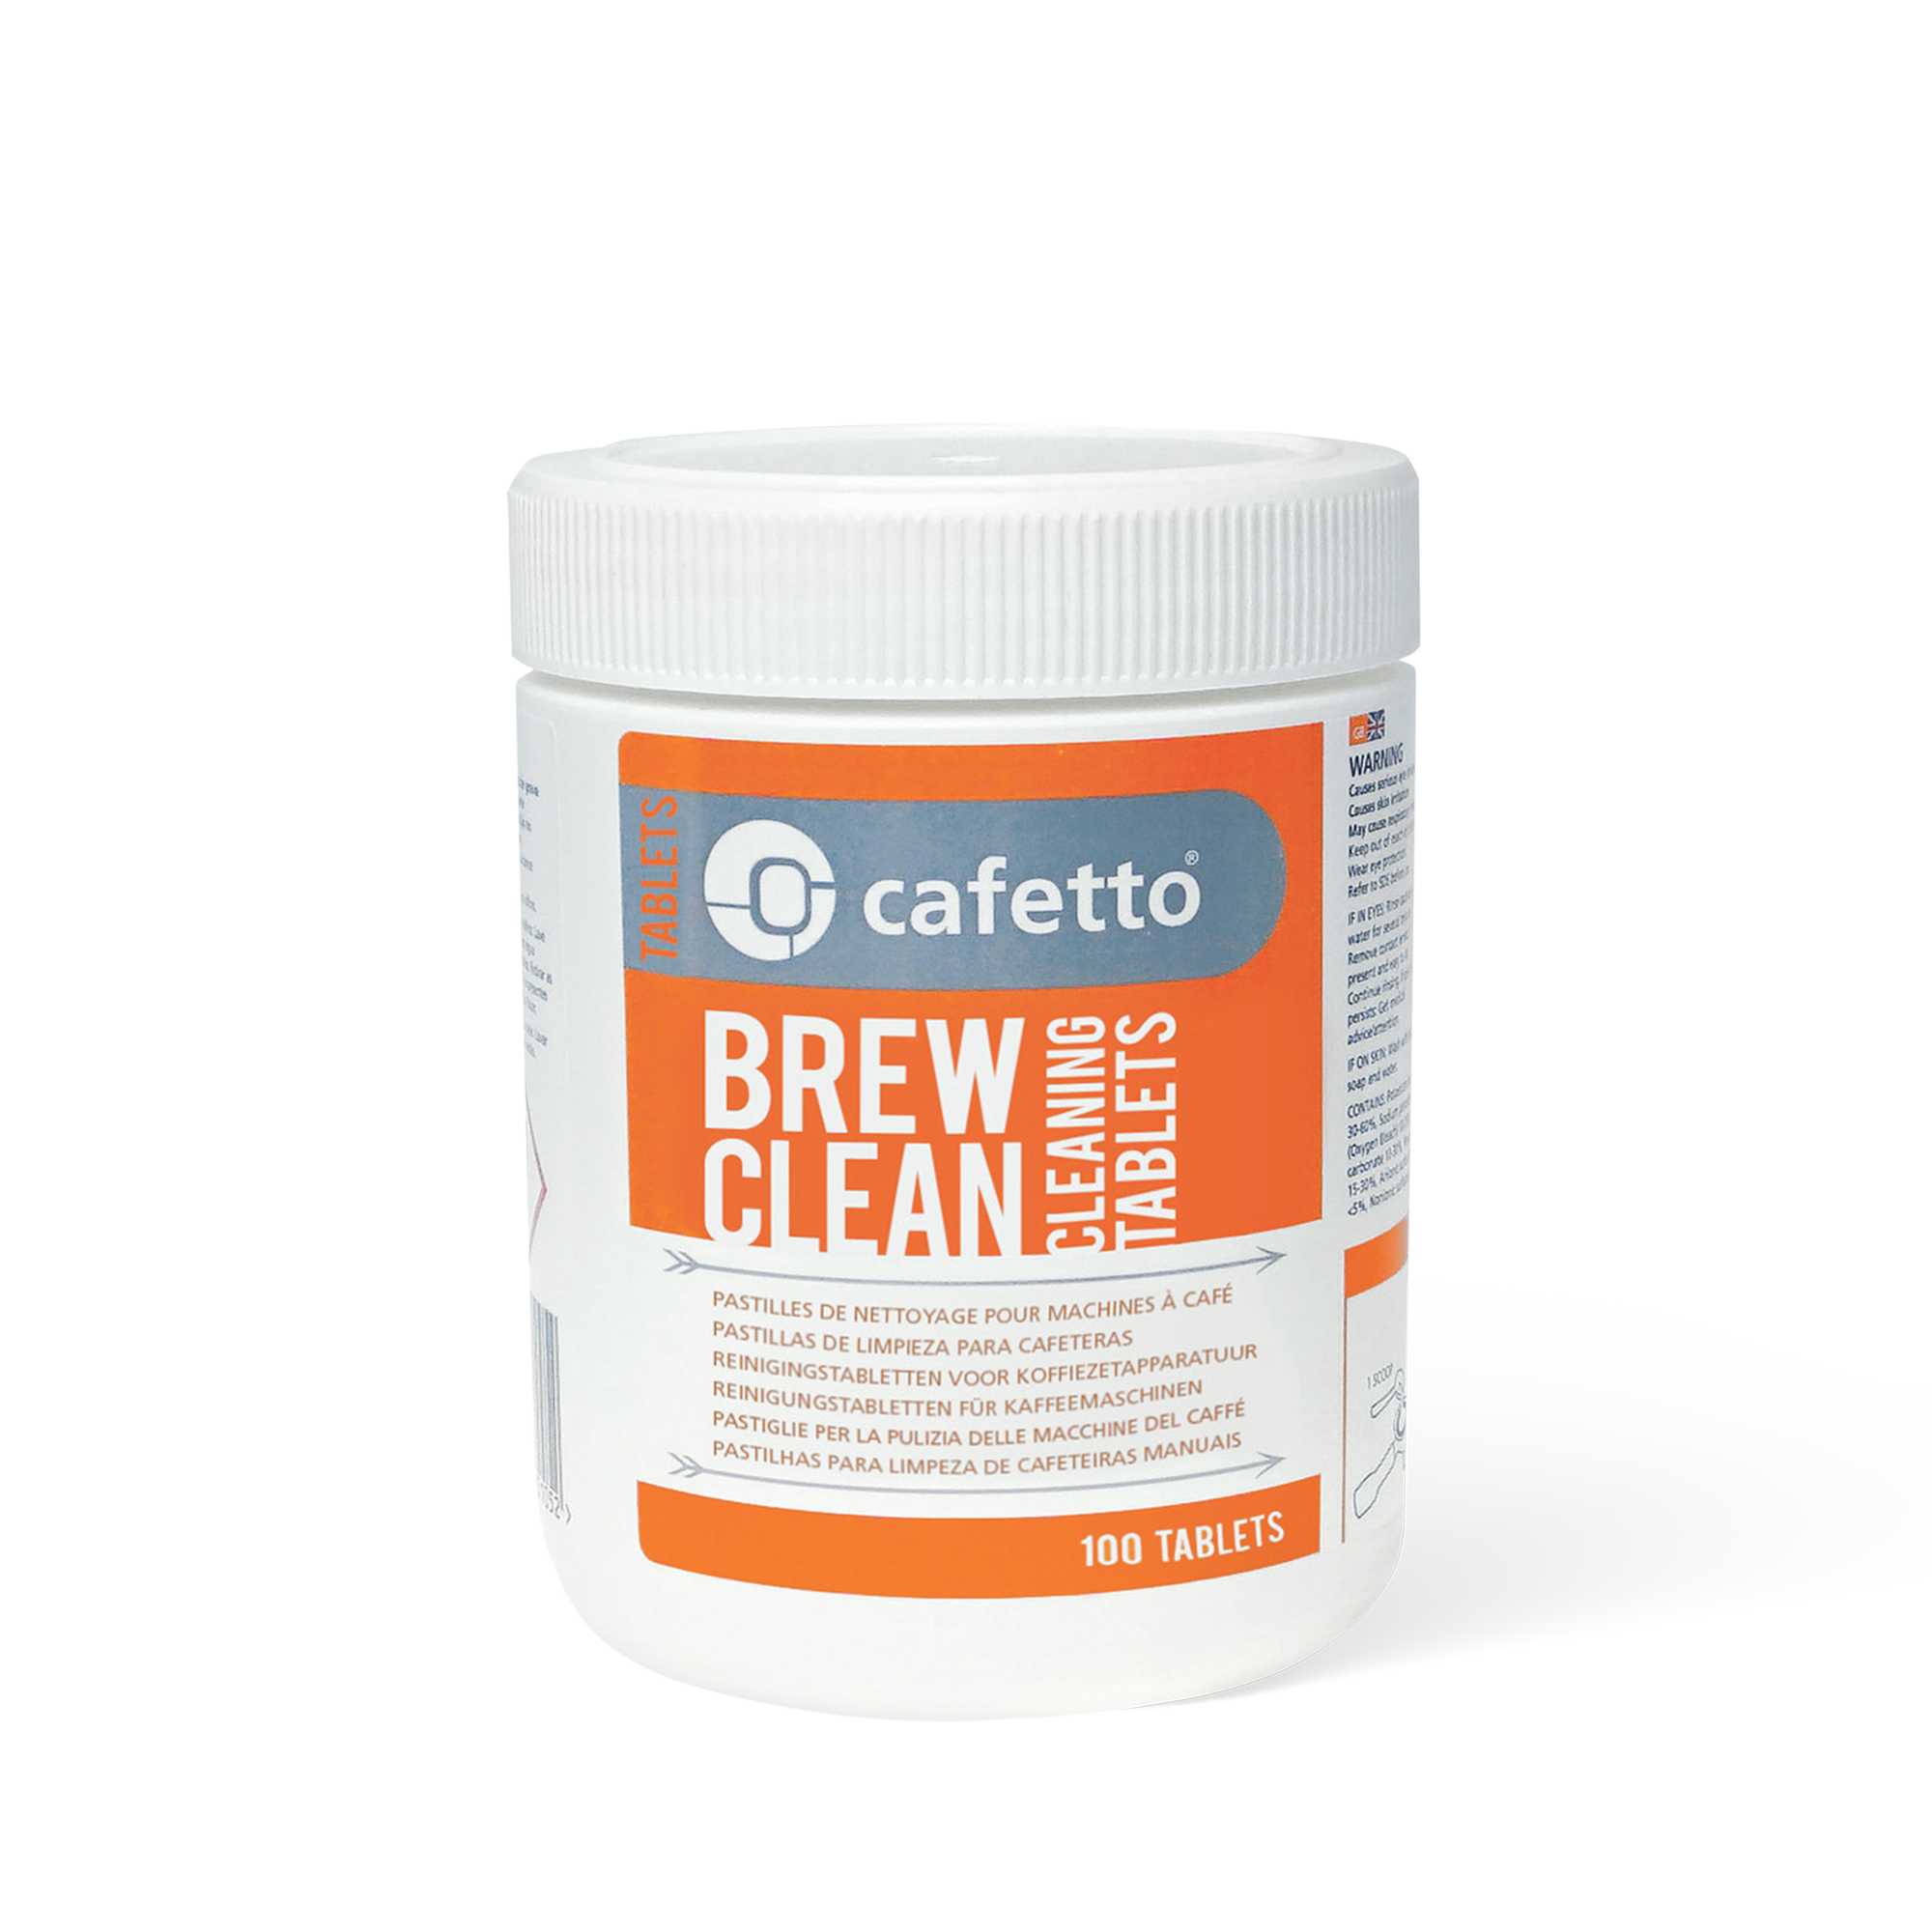 Cafetto Brew Clean